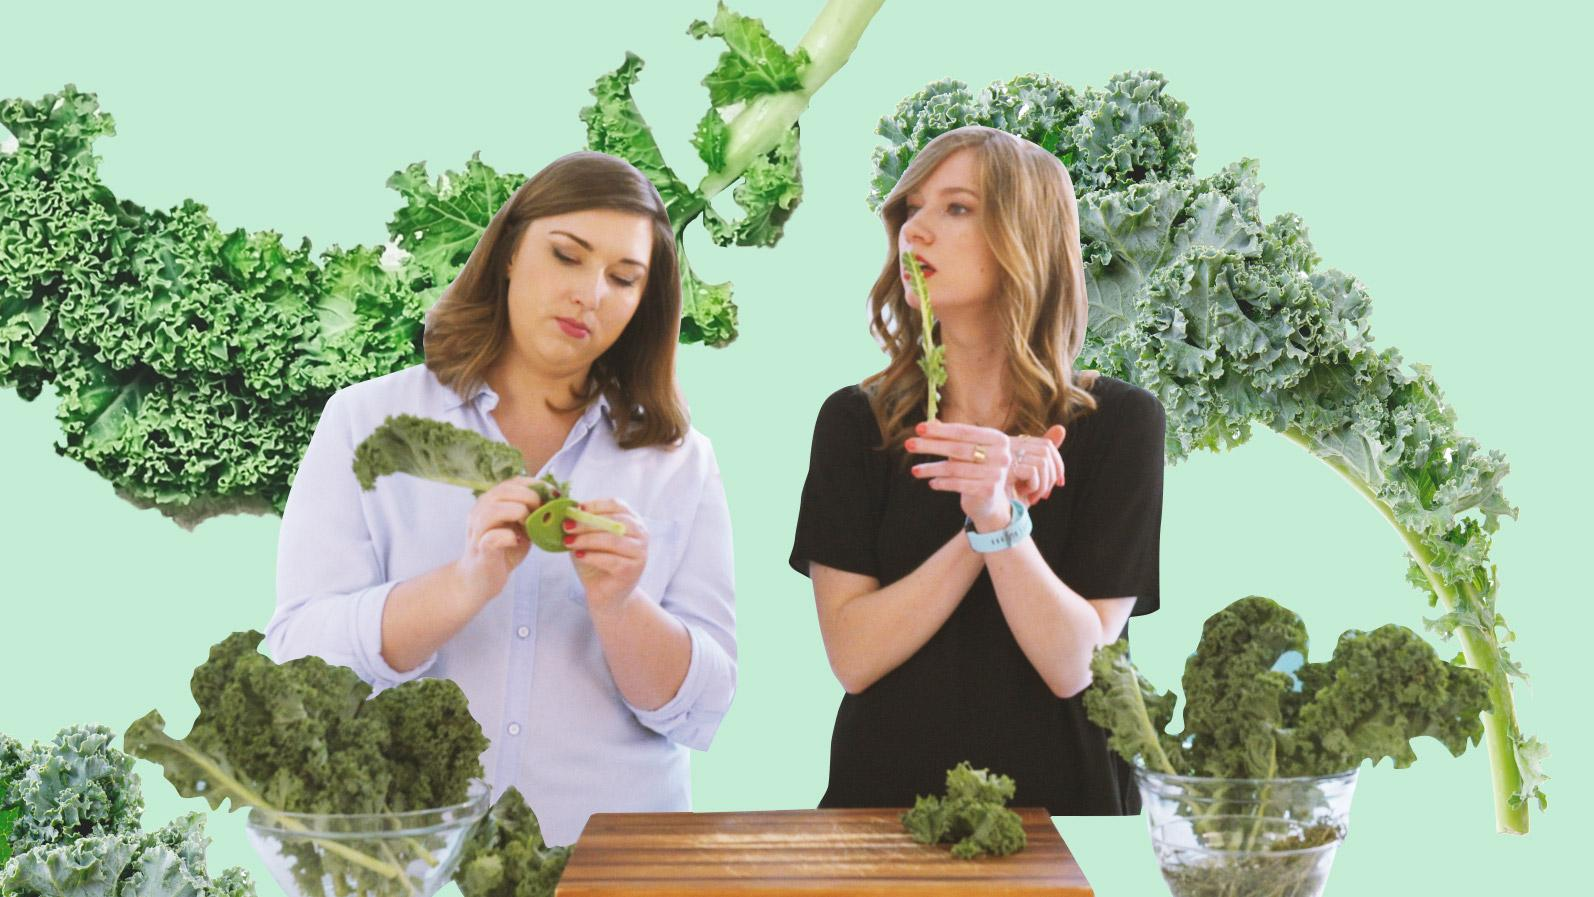 Does Your Kitchen Need a Kale or Herb Stripper? We Tested One to Find